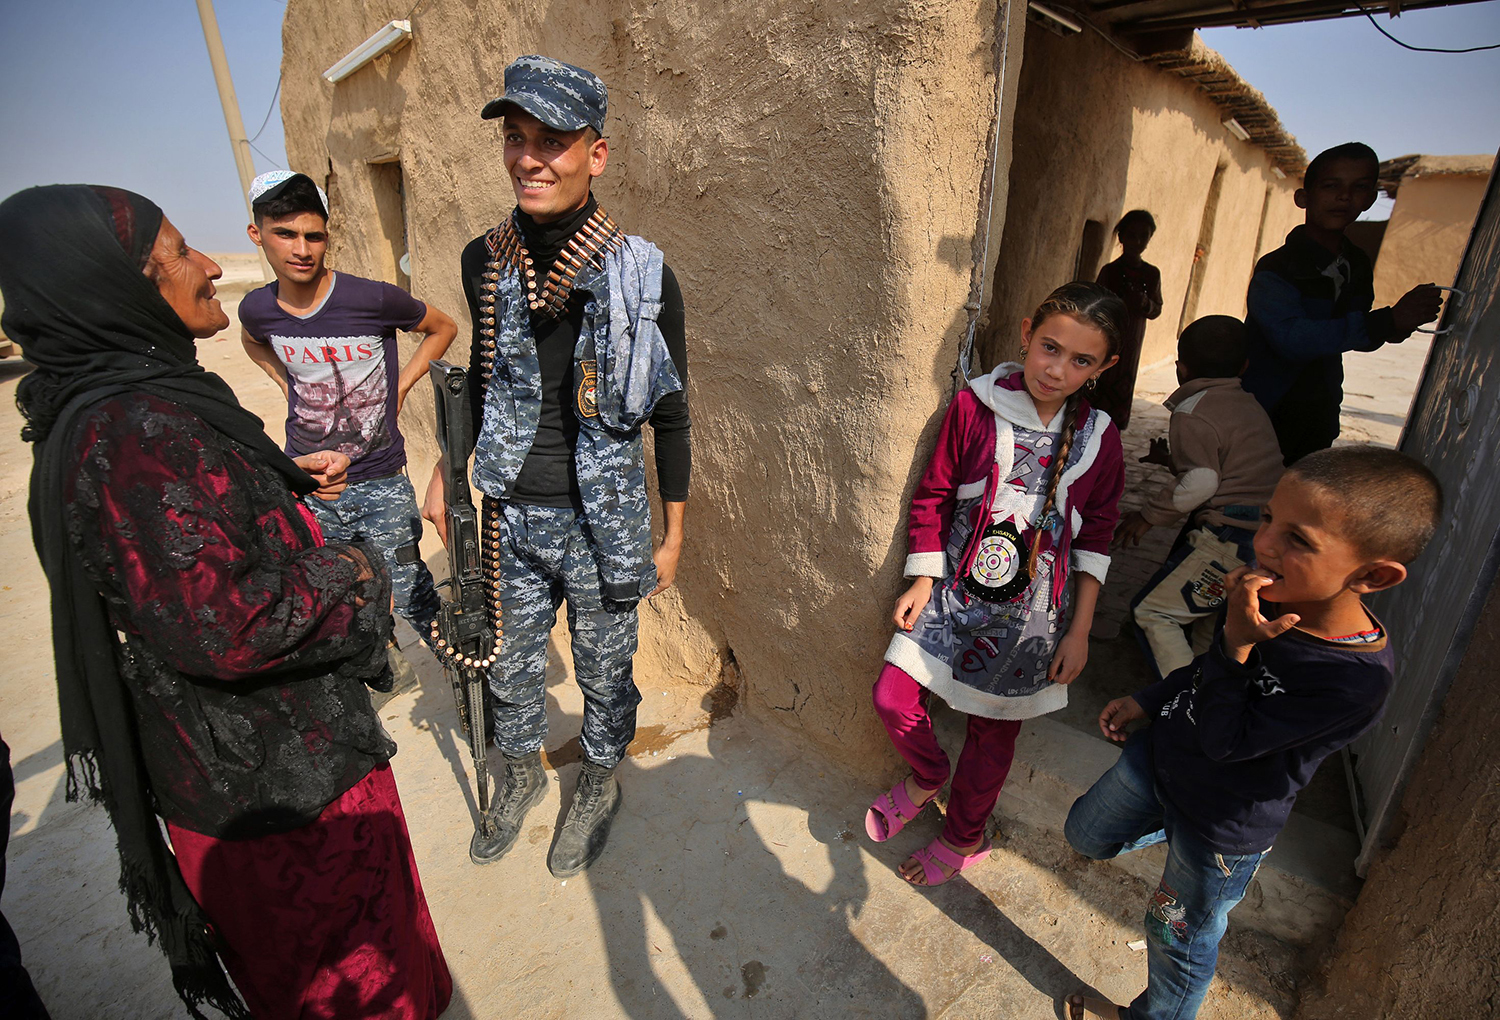 A member of the Iraqi forces talks with a family in the village of al-Khuwayn, south of Mosul, after recapturing it from Islamic State (IS) group jihadists on October 23, 2016, in part of an ongoing operation to tighten the noose around Mosul and reclaim the last major Iraqi city under IS control. / AFP PHOTO / AHMAD AL-RUBAYE / TT / kod 444